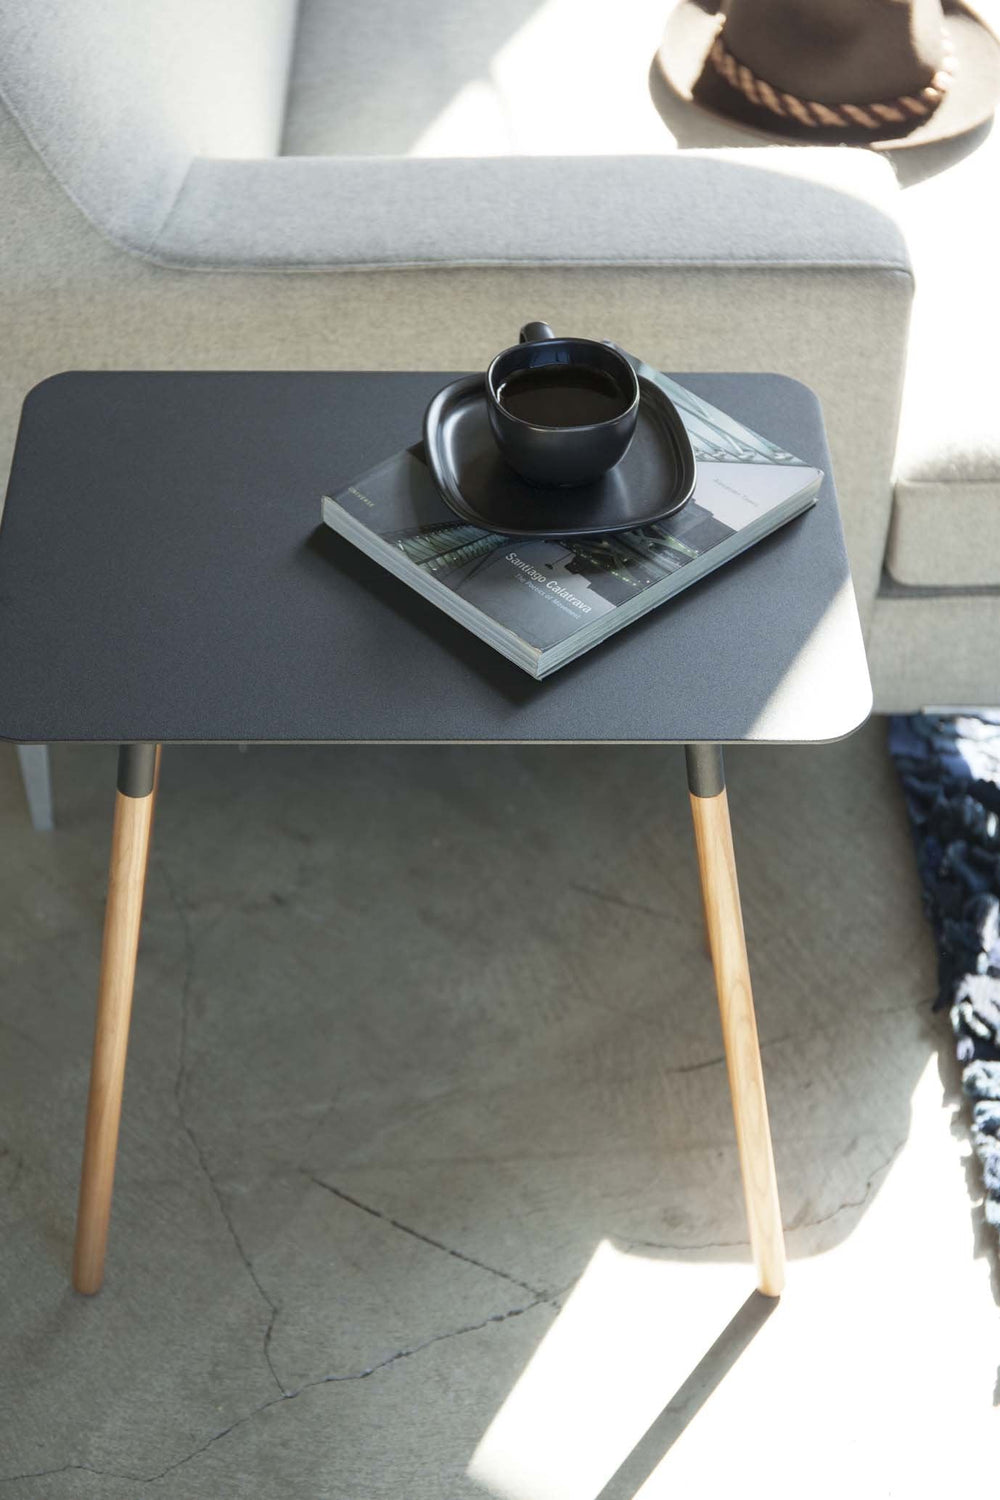 Rectangular Yamazaki side table with wooden legs